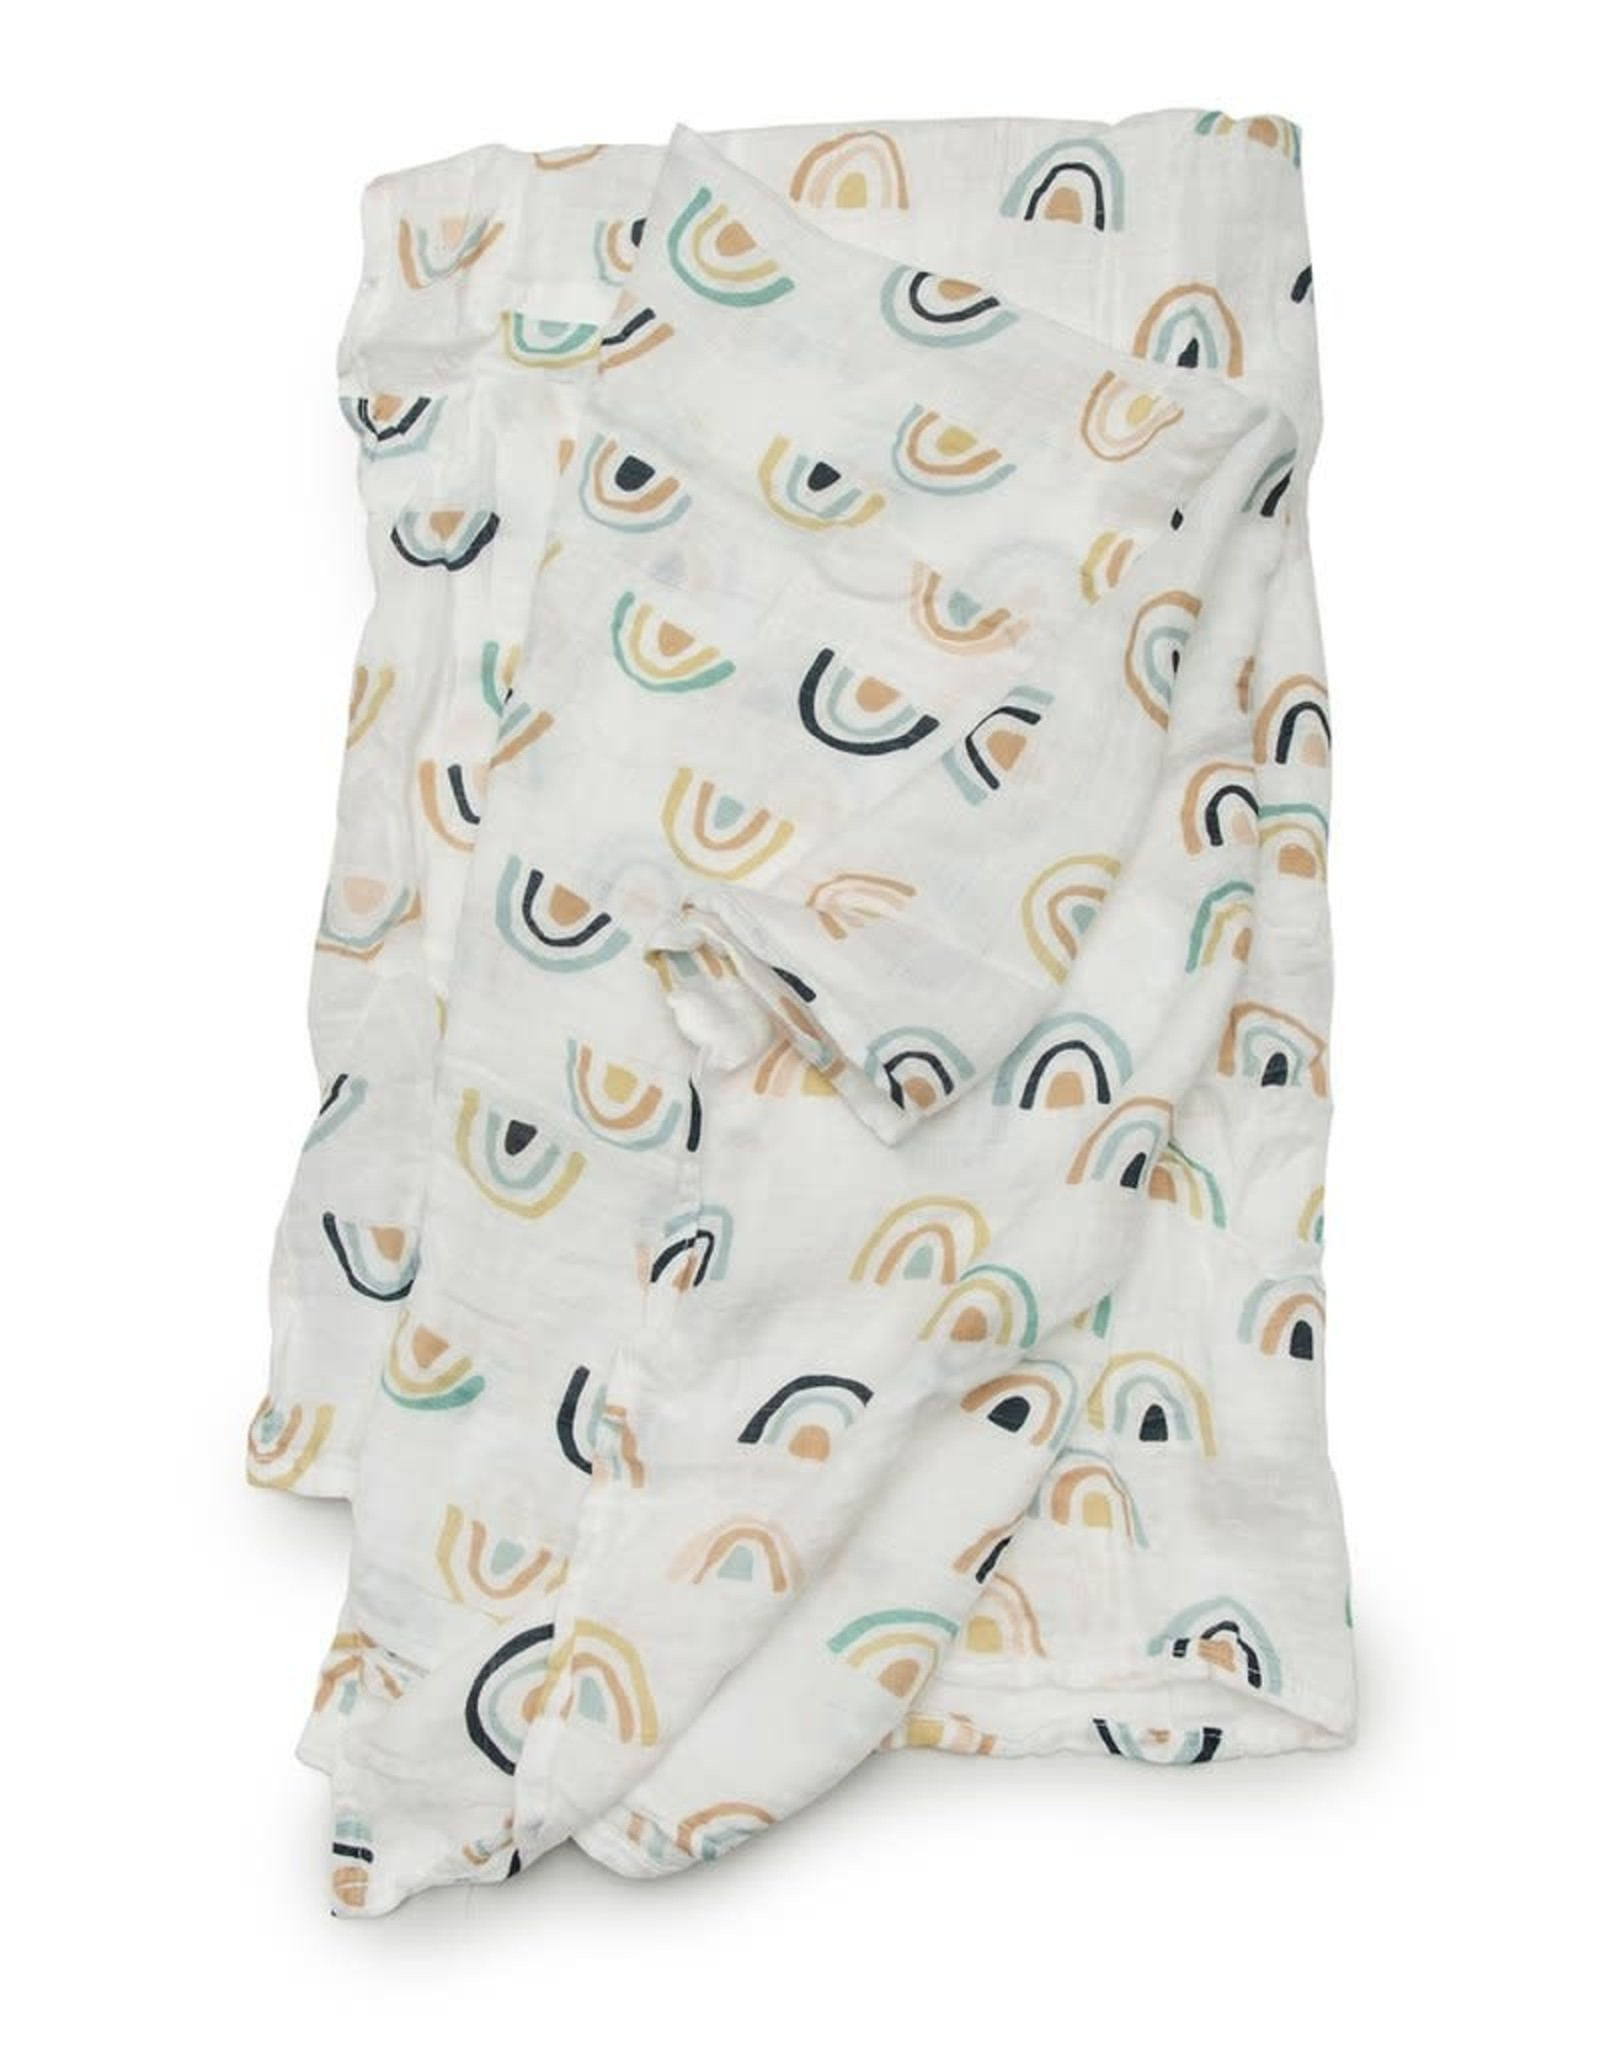 LouLou Lollipop LoulouLOLLIPOP Muslin Swaddle Neutral Rainbows